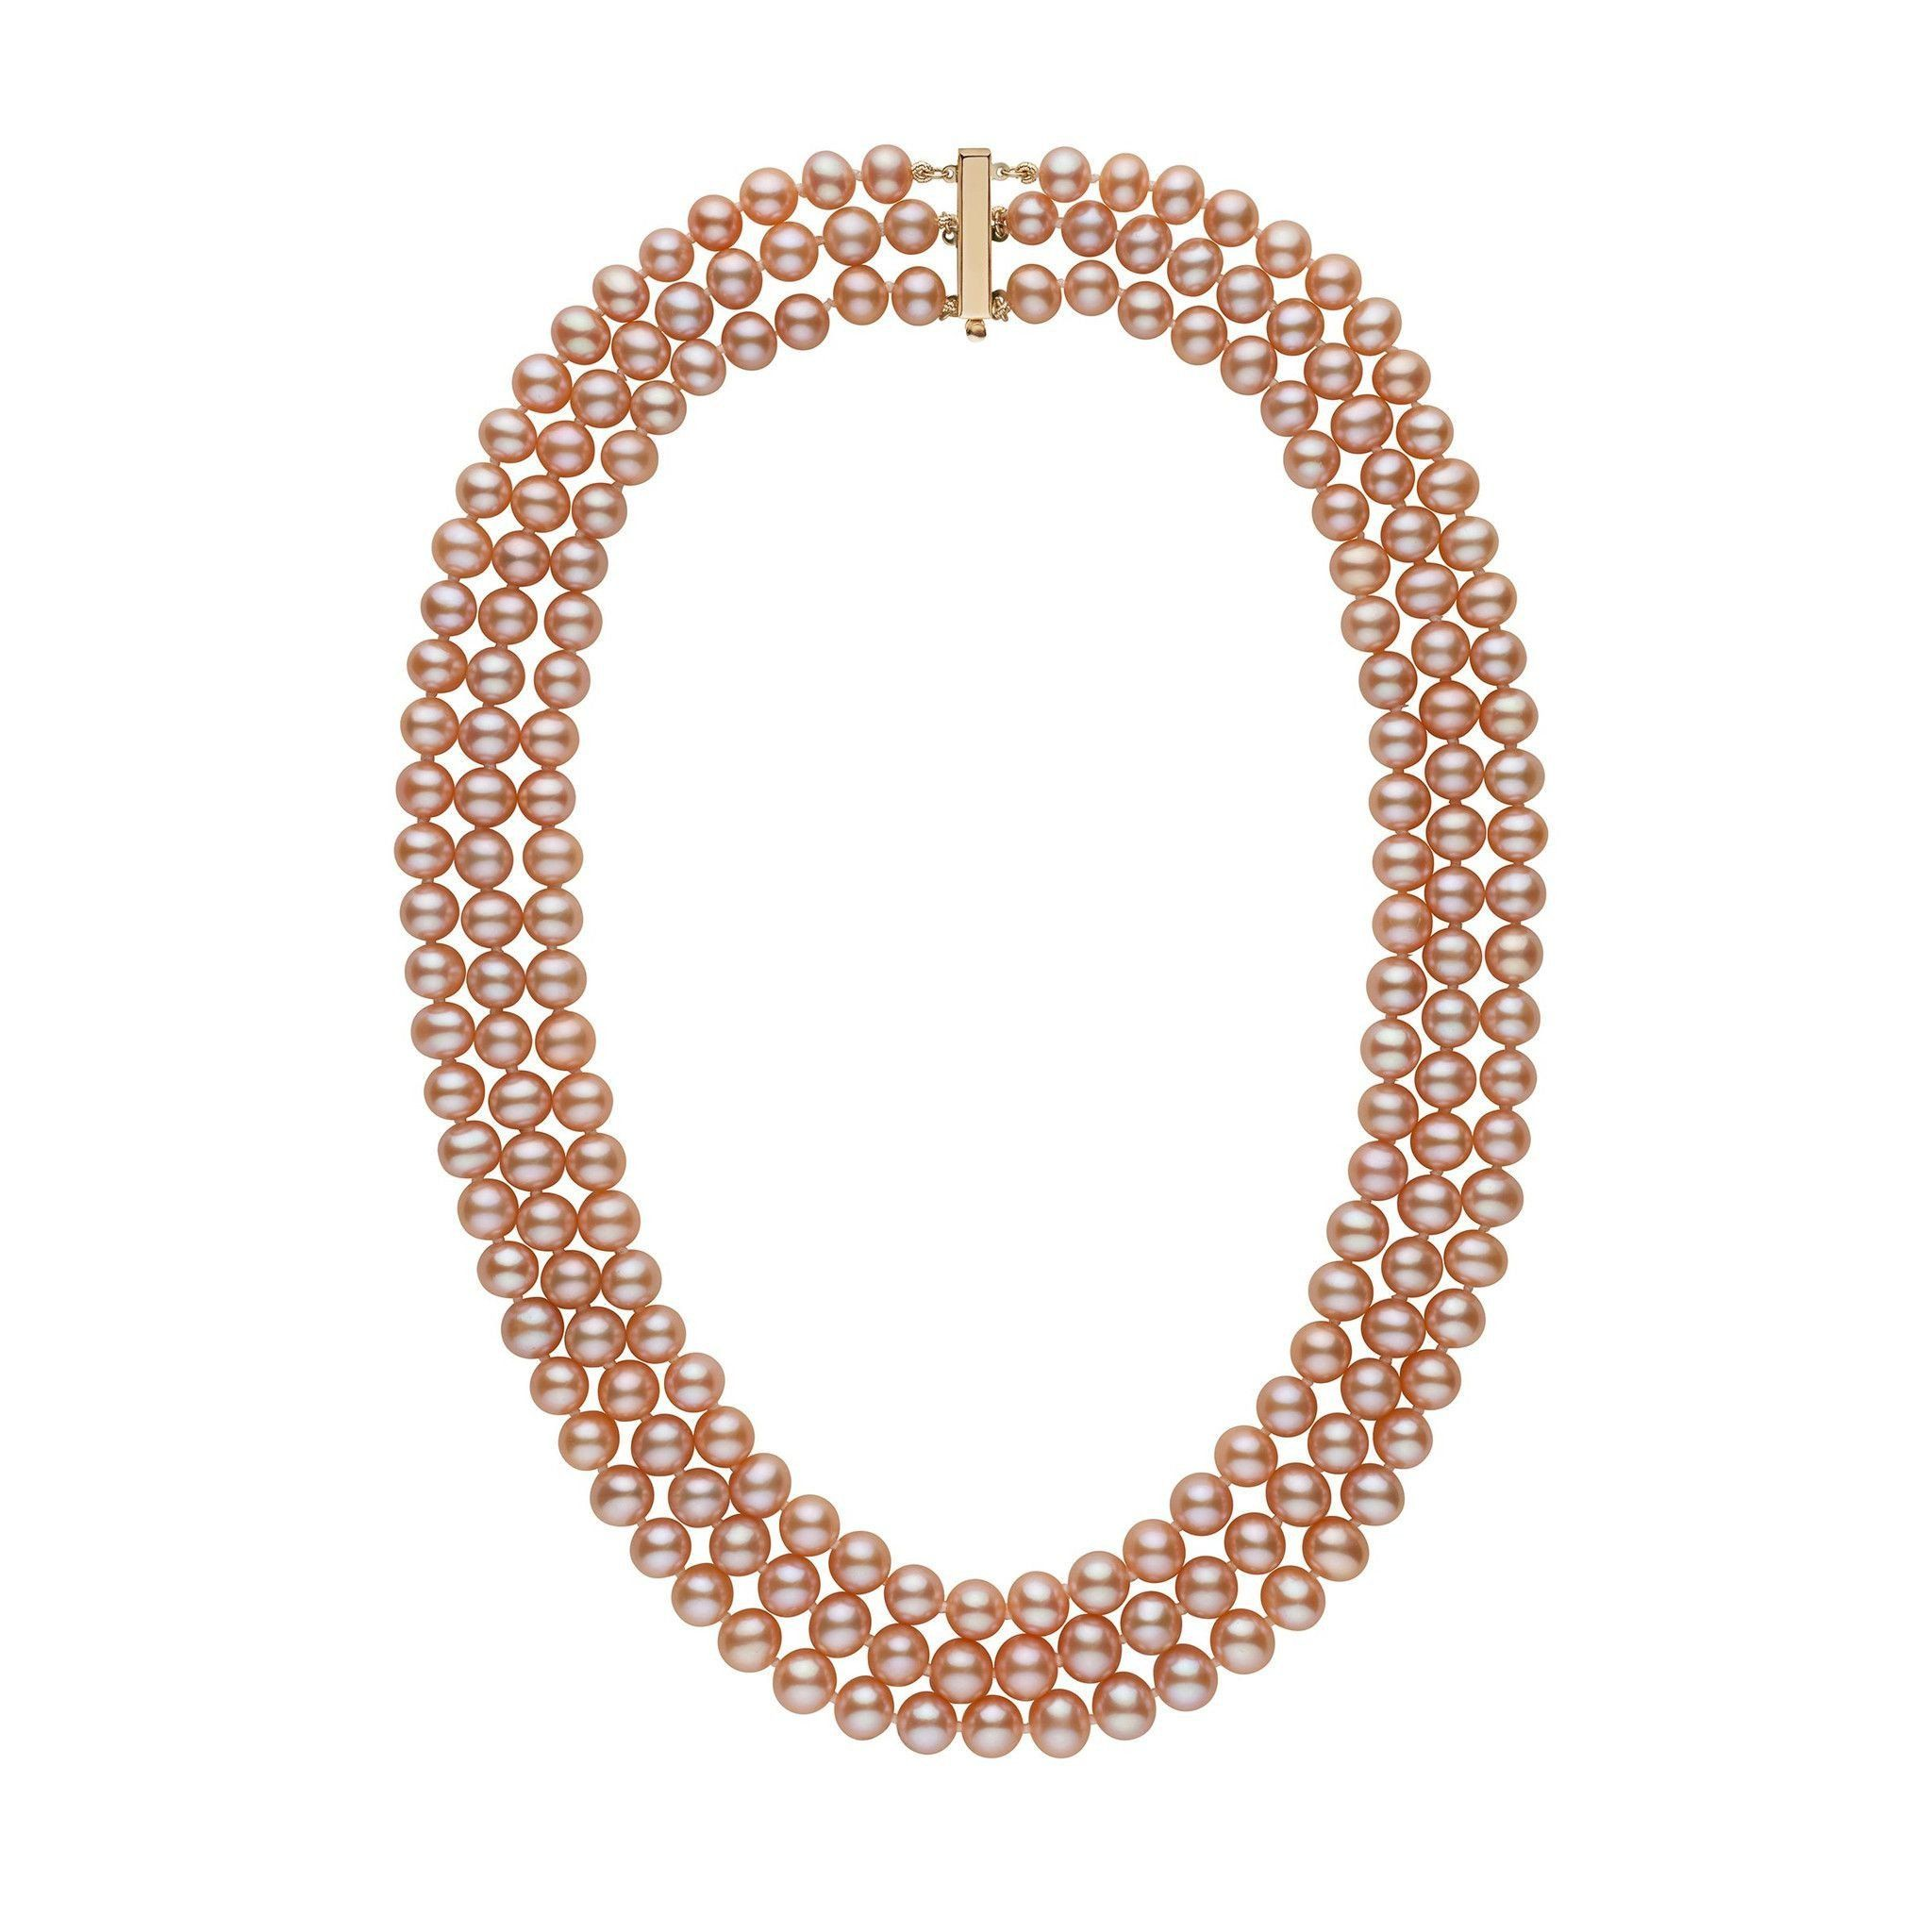 6.5-7.0 mm Triple-Strand AA+ Pink to Peach Freshwater Cultured Pearl Necklace by Pearl Paradise